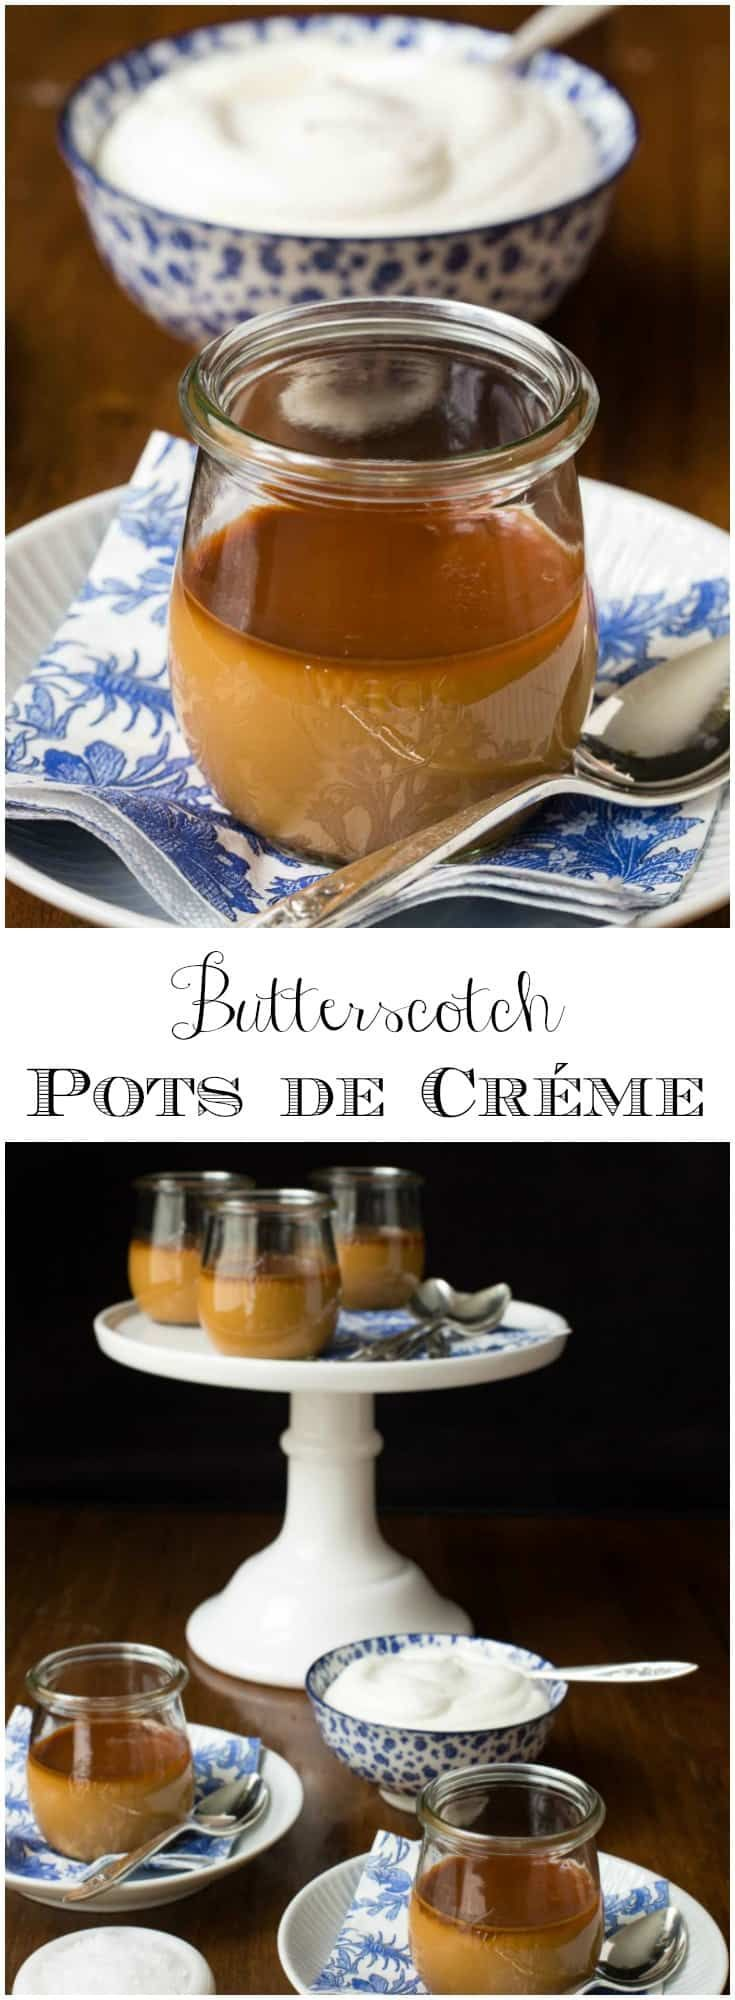 An elegant, French-inspired, make ahead dessert that always brings rave reviews. It's also crazy delicious! #butterscotch #potsdecreme #dessert #specialoccasion